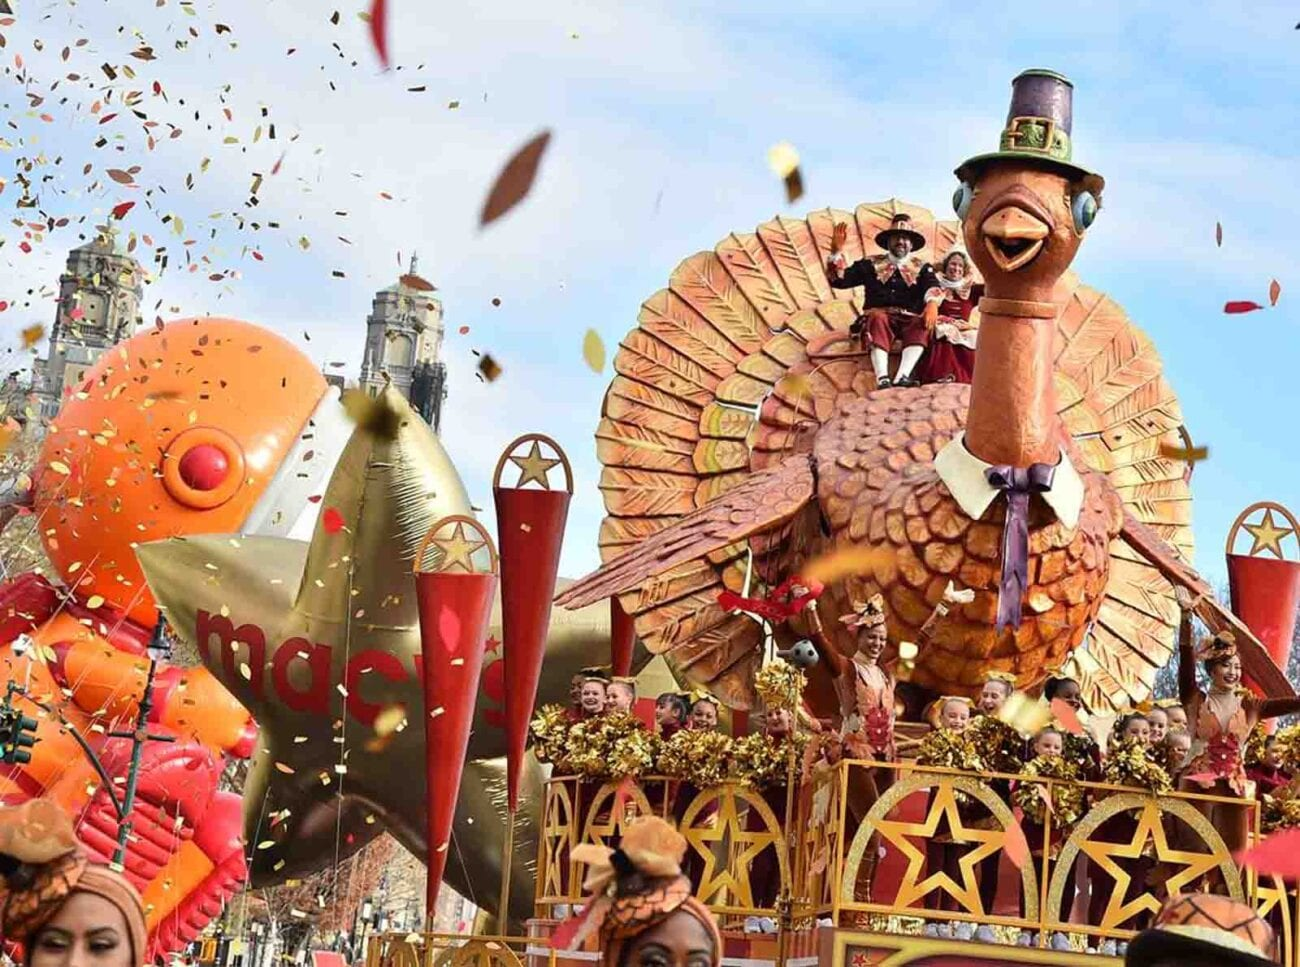 Check all options to watch Macy's Thanksgiving Day Parade 2020 online live stream Reddit from the USA and other Countries free from any devices.